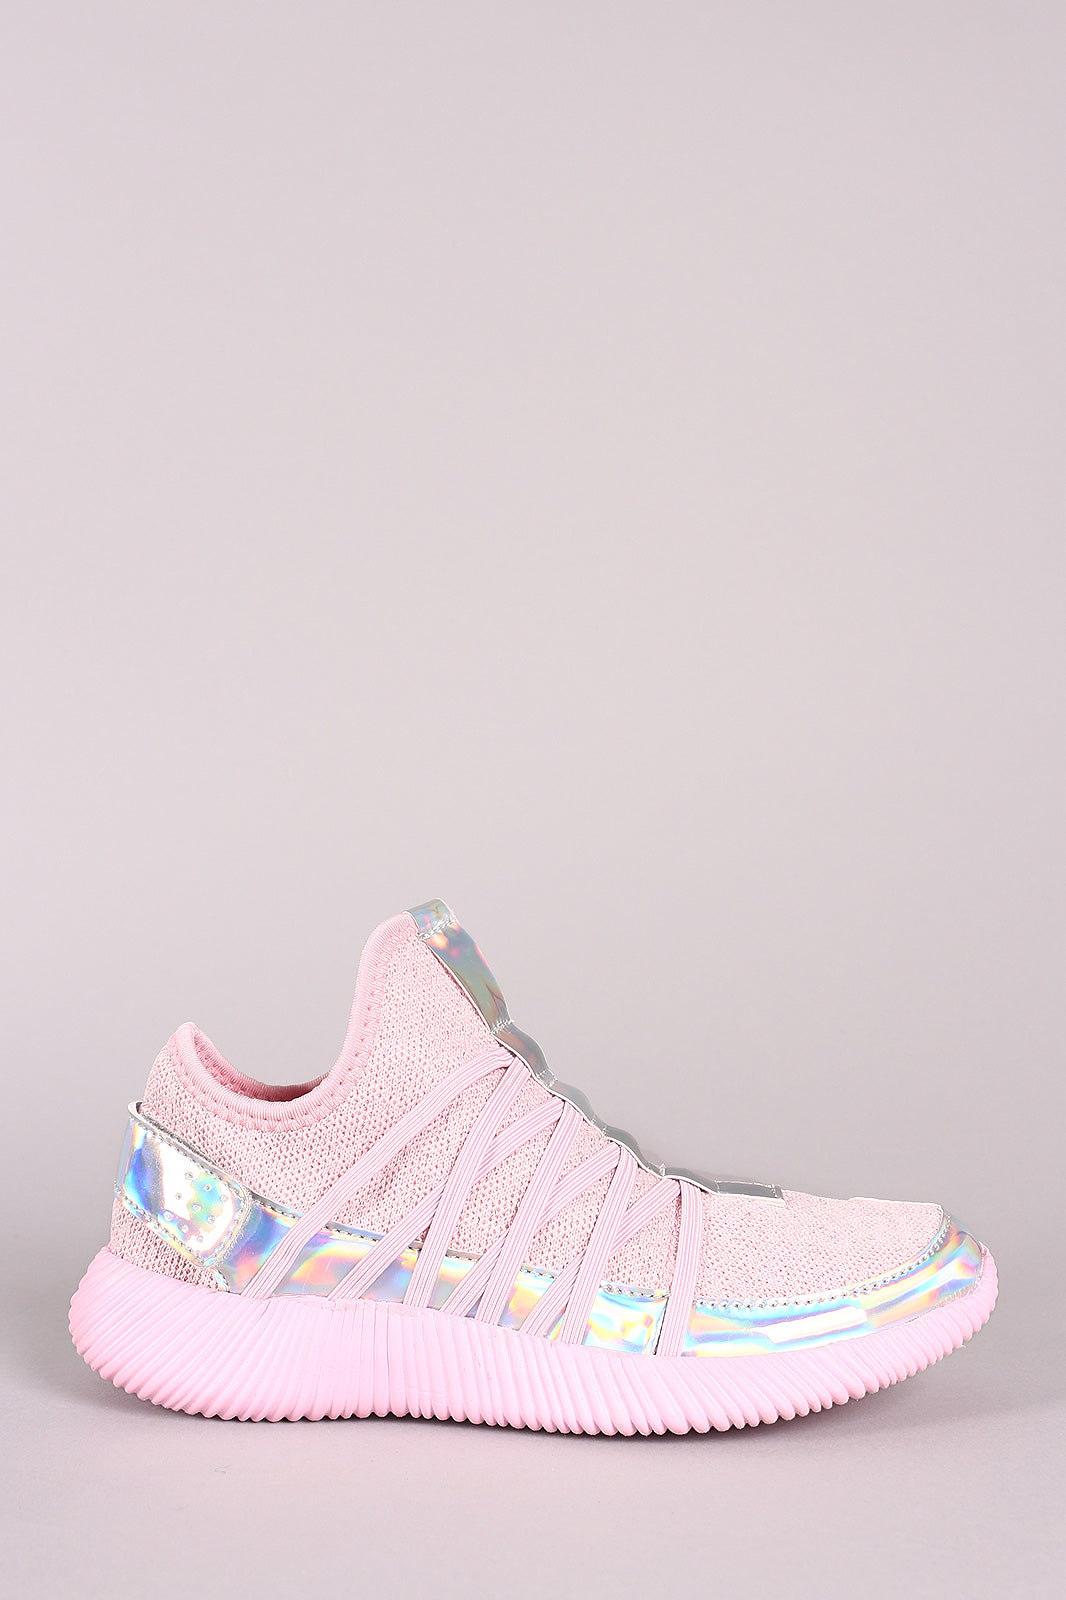 Holographic Slip-On Rigged Sneaker